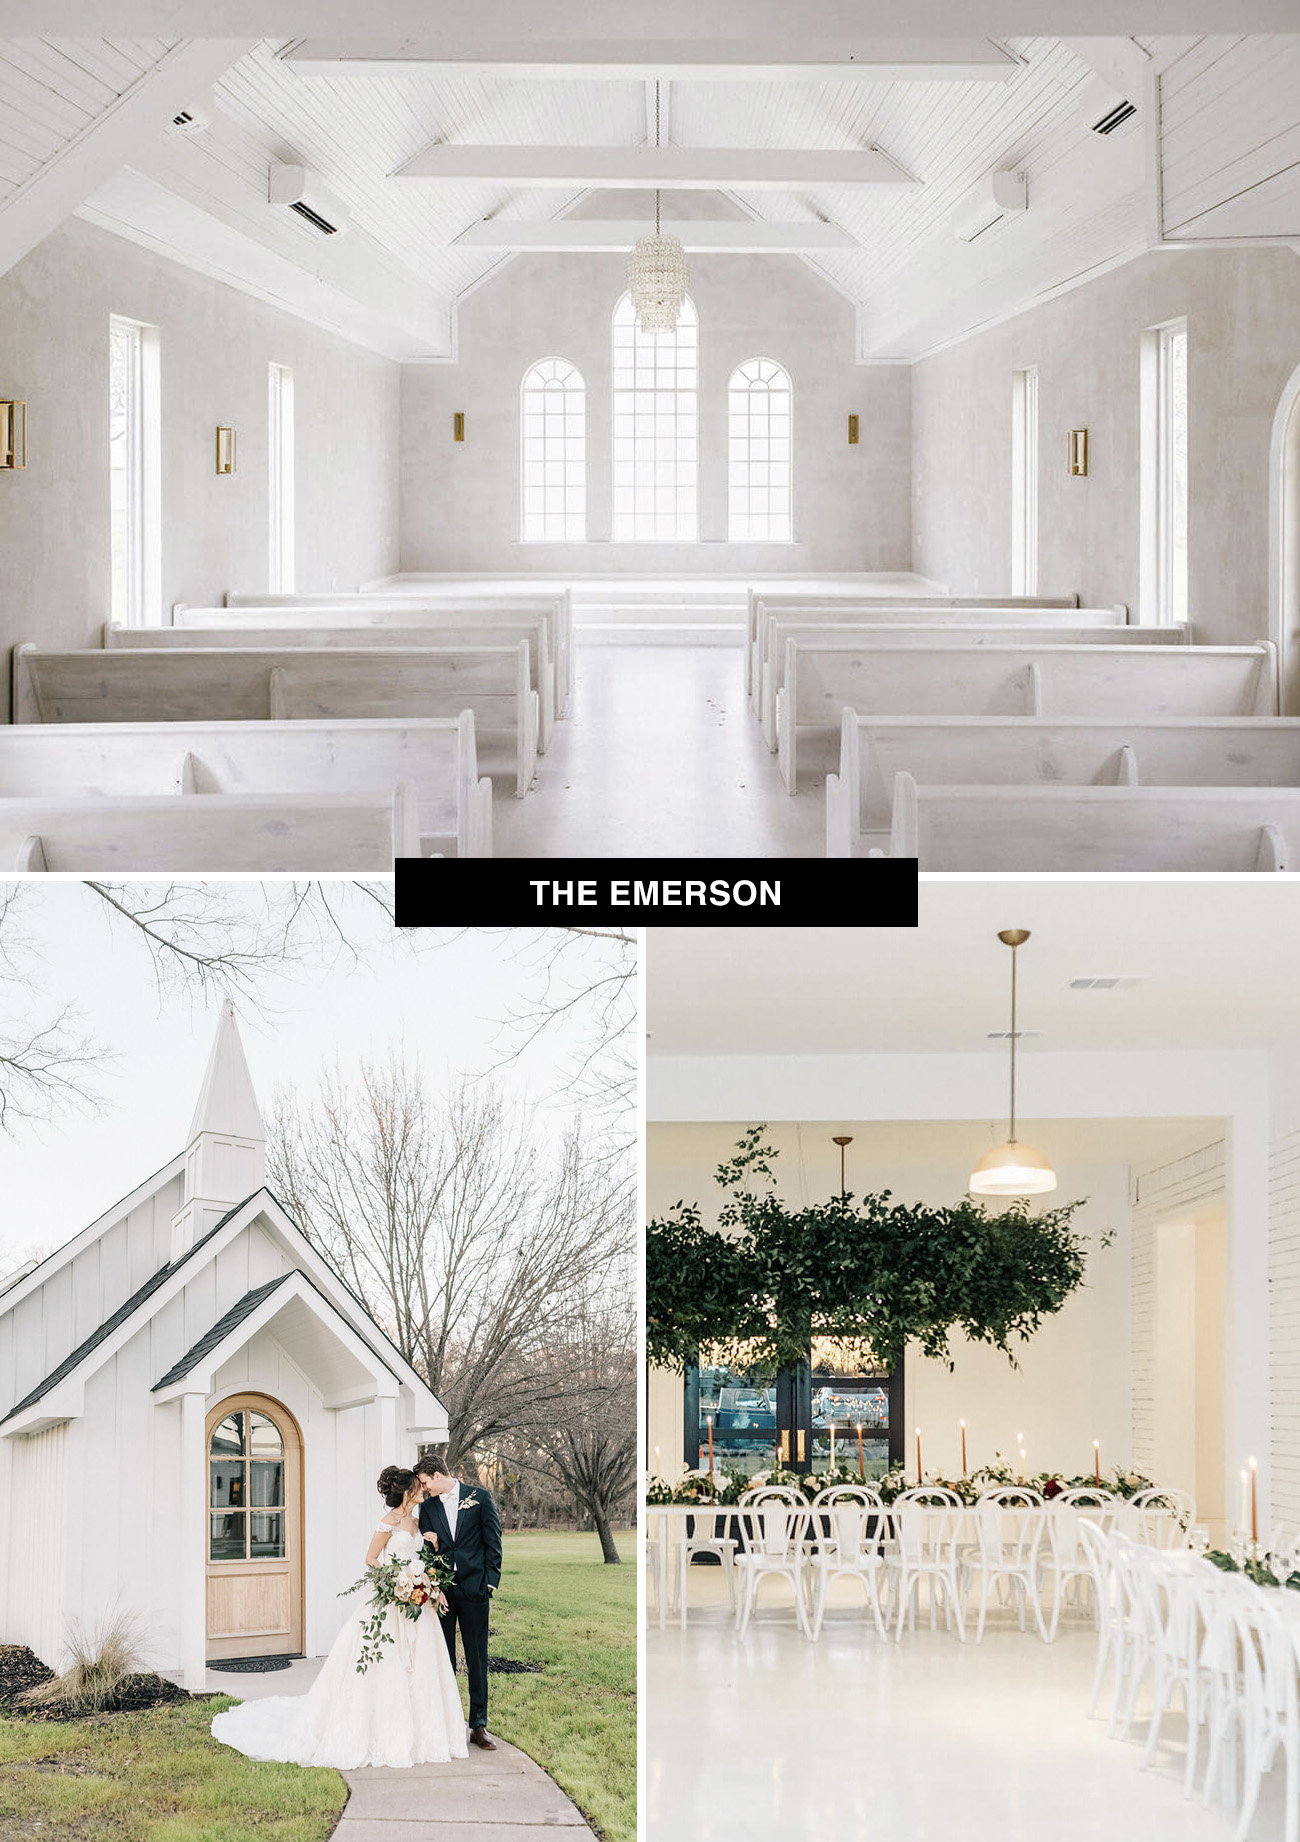 Emerson wedding venue in Dallas, Texas designed by Leanne Ford is a cute white chapel for weddings